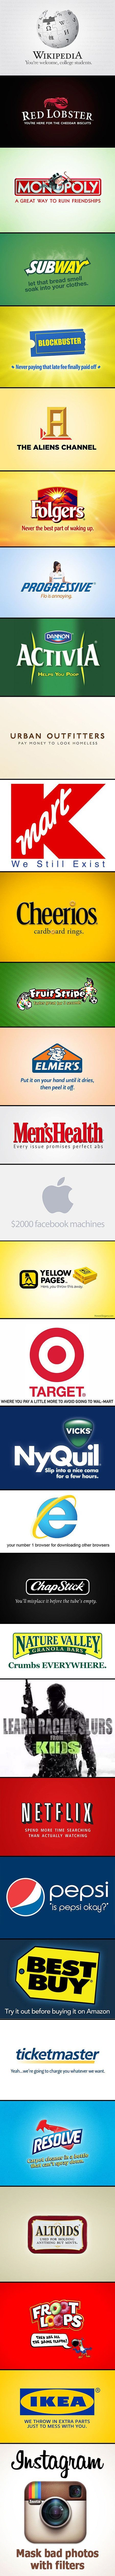 If company logos and slogans were honest... hahaha